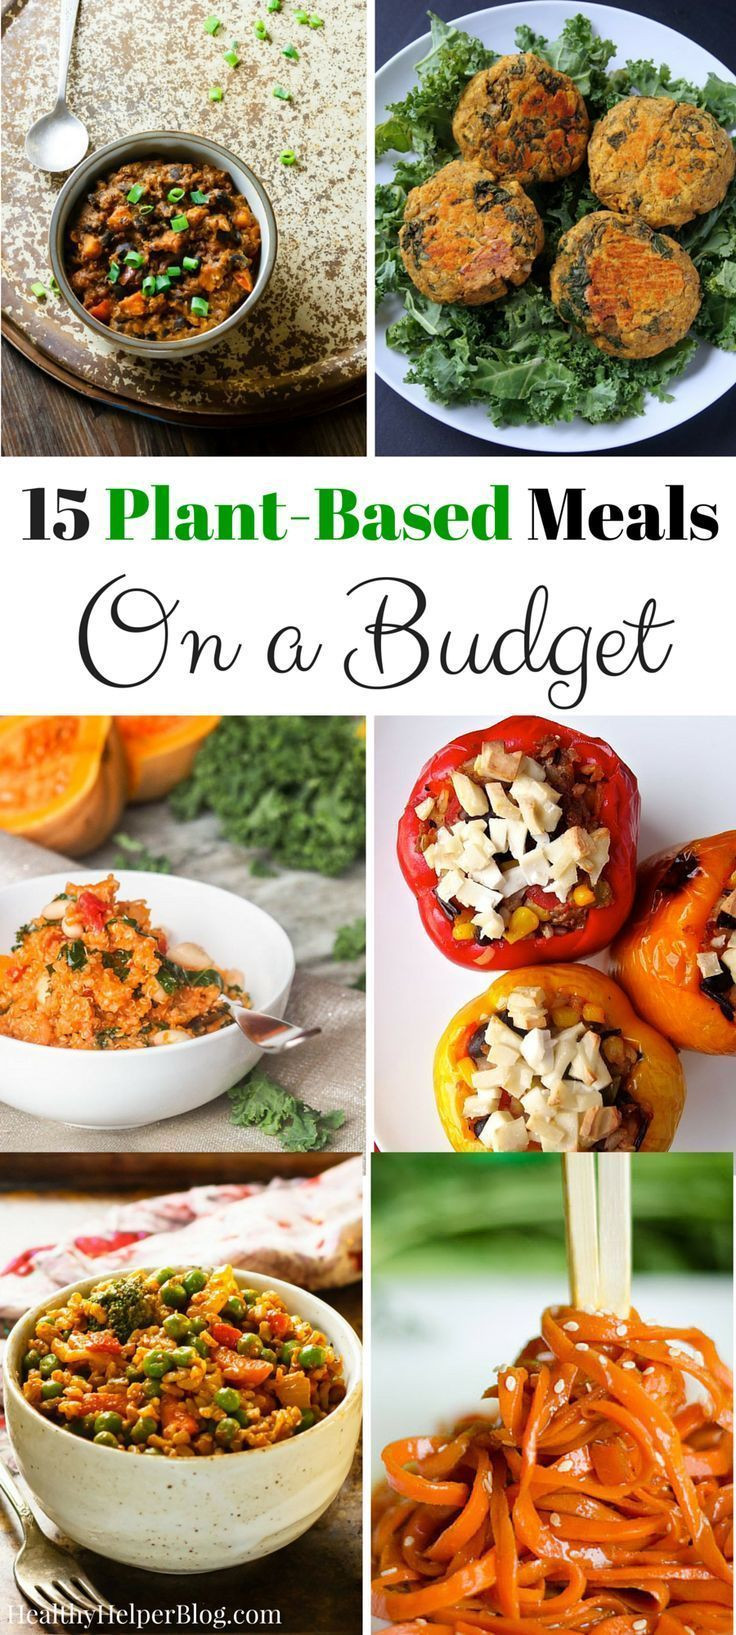 Healthy Dinners On A Budget  228 best images about Eating Healthy on a Bud on